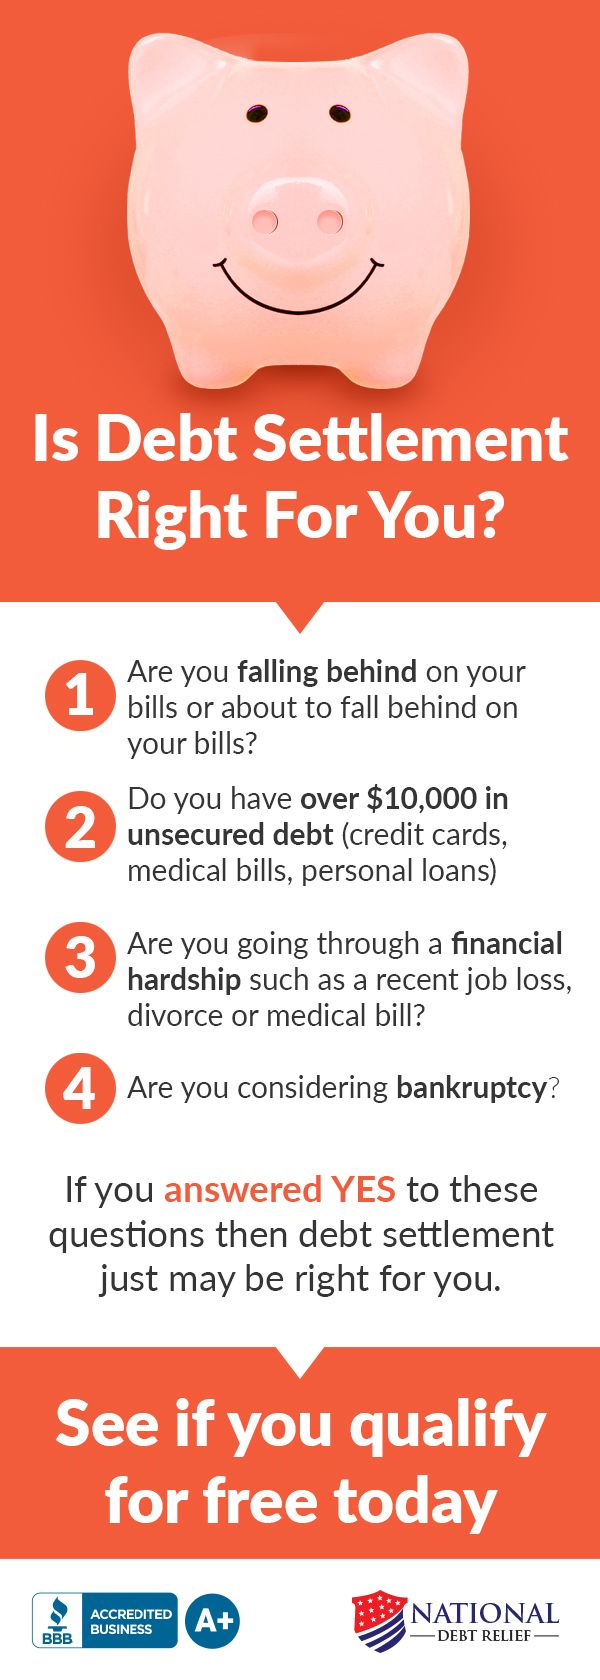 Drowning in debt? Thinking about bankruptcy? Drowning in debt can be a very stressful situation and there are several options to help you. See if #1 rated National Debt Relief can help for 2017. If you have over $10,000 in unsecured debt you can get a free quote to see how much you can save with no obligation. BBB A+ accredited with a 100% money back guarantee.